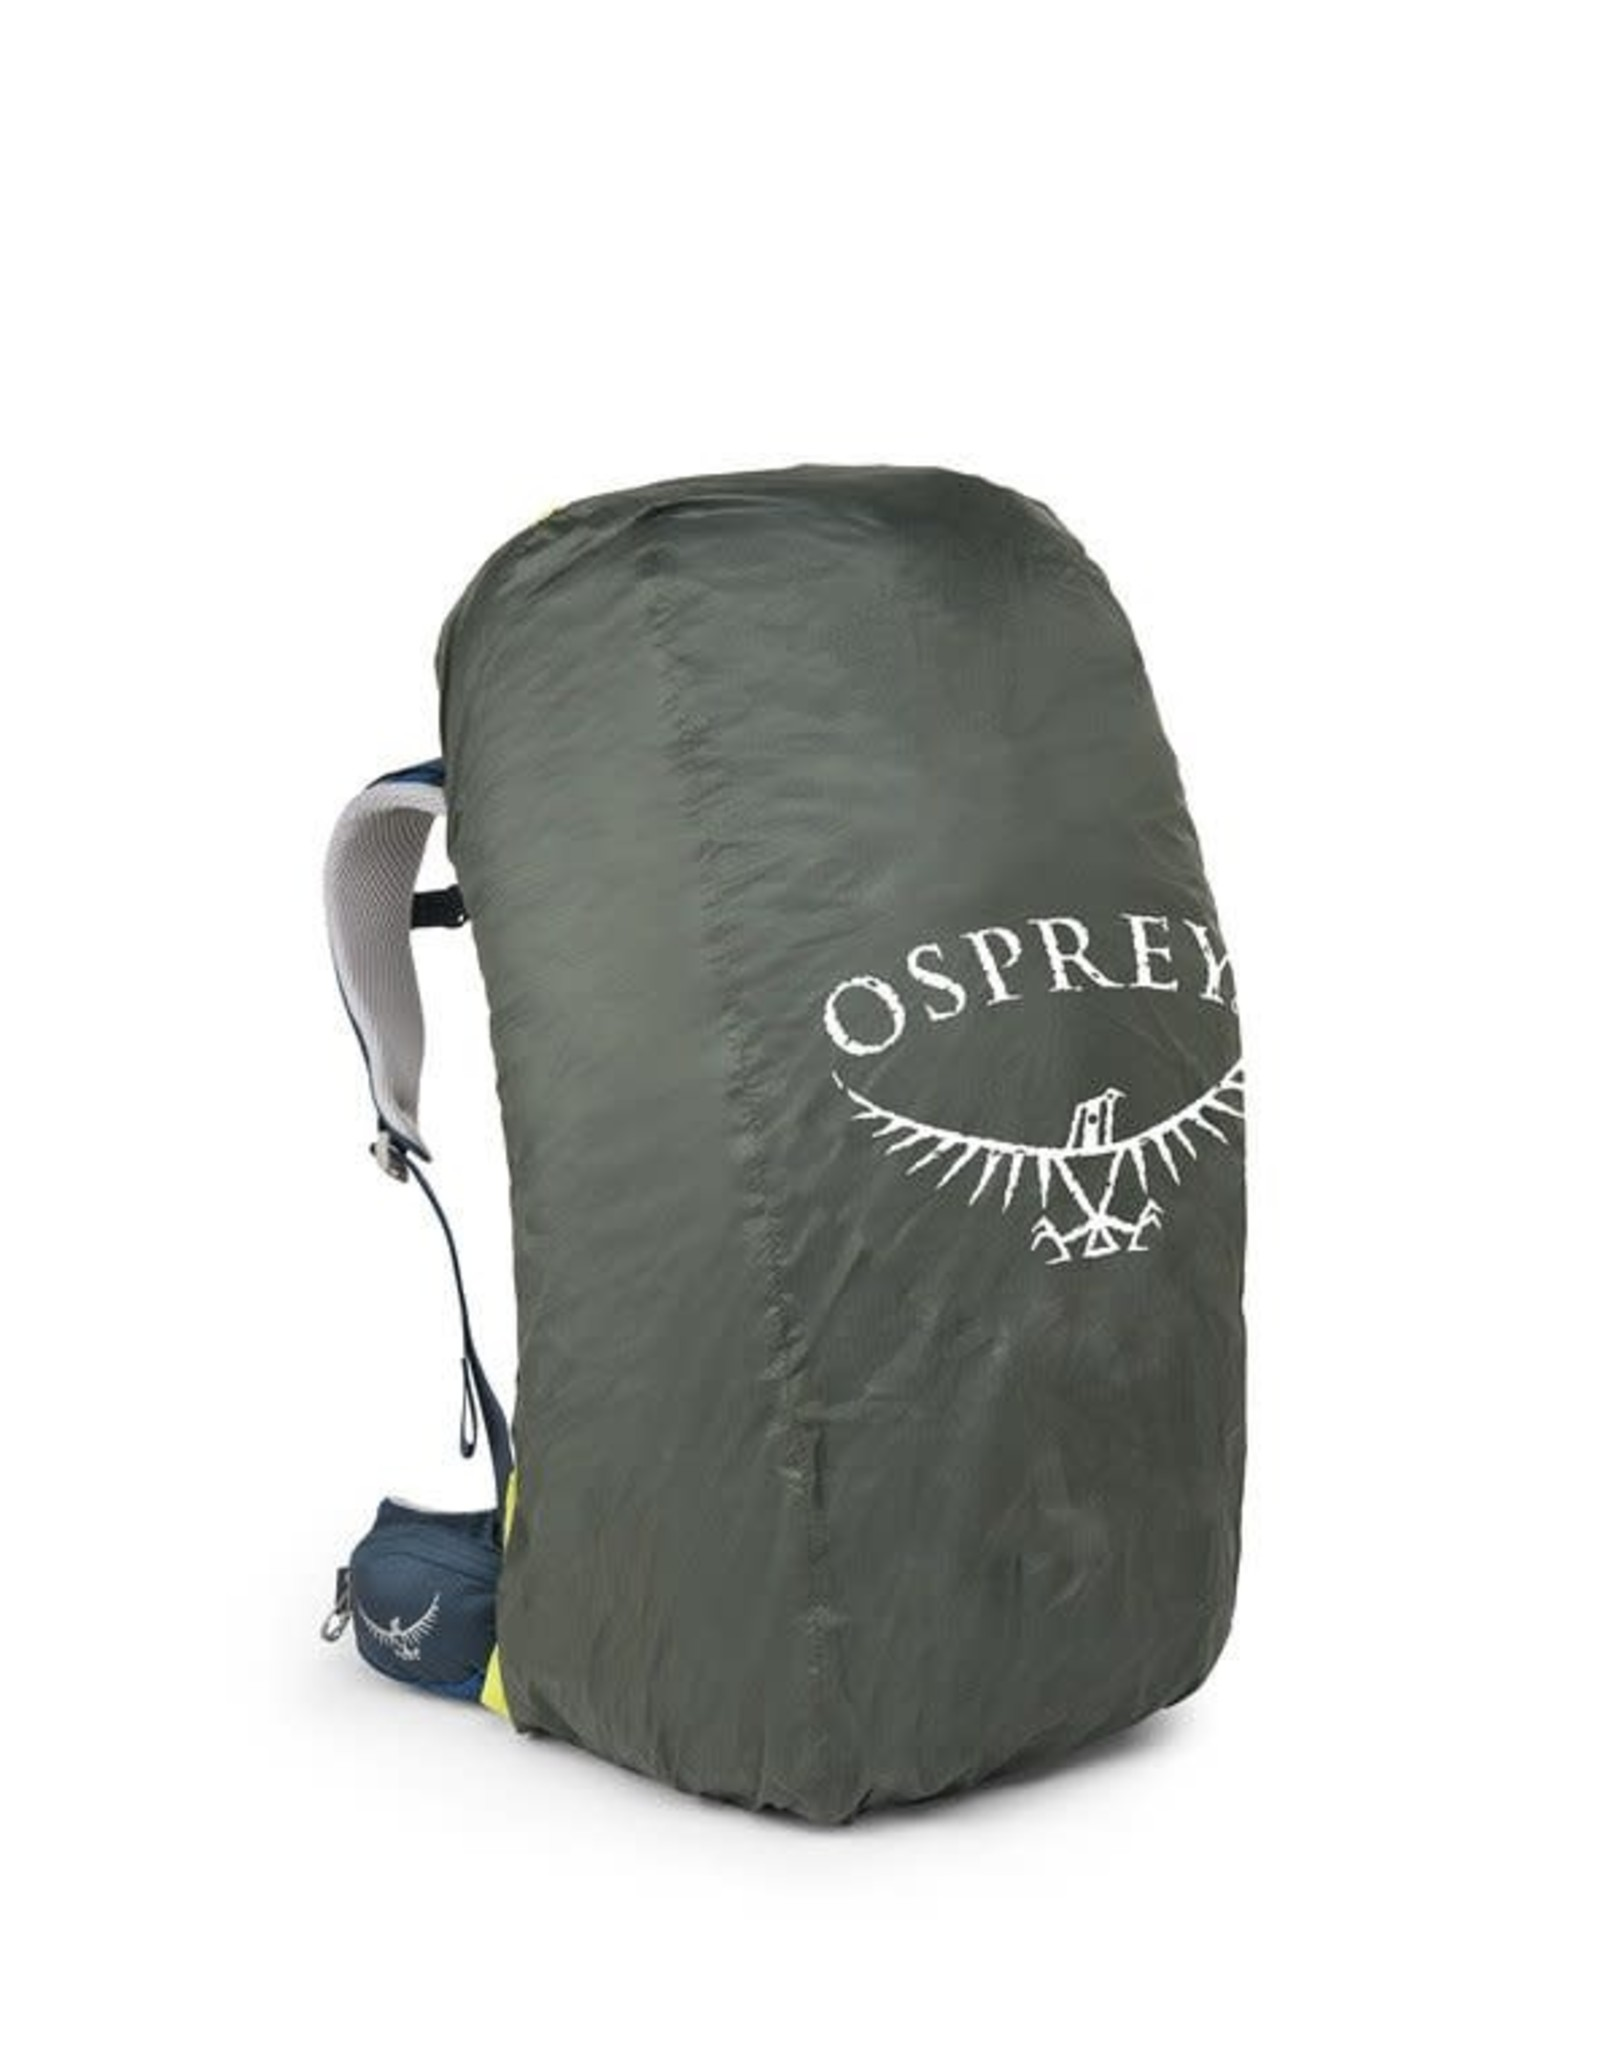 Osprey Osprey UL Raincover Medium